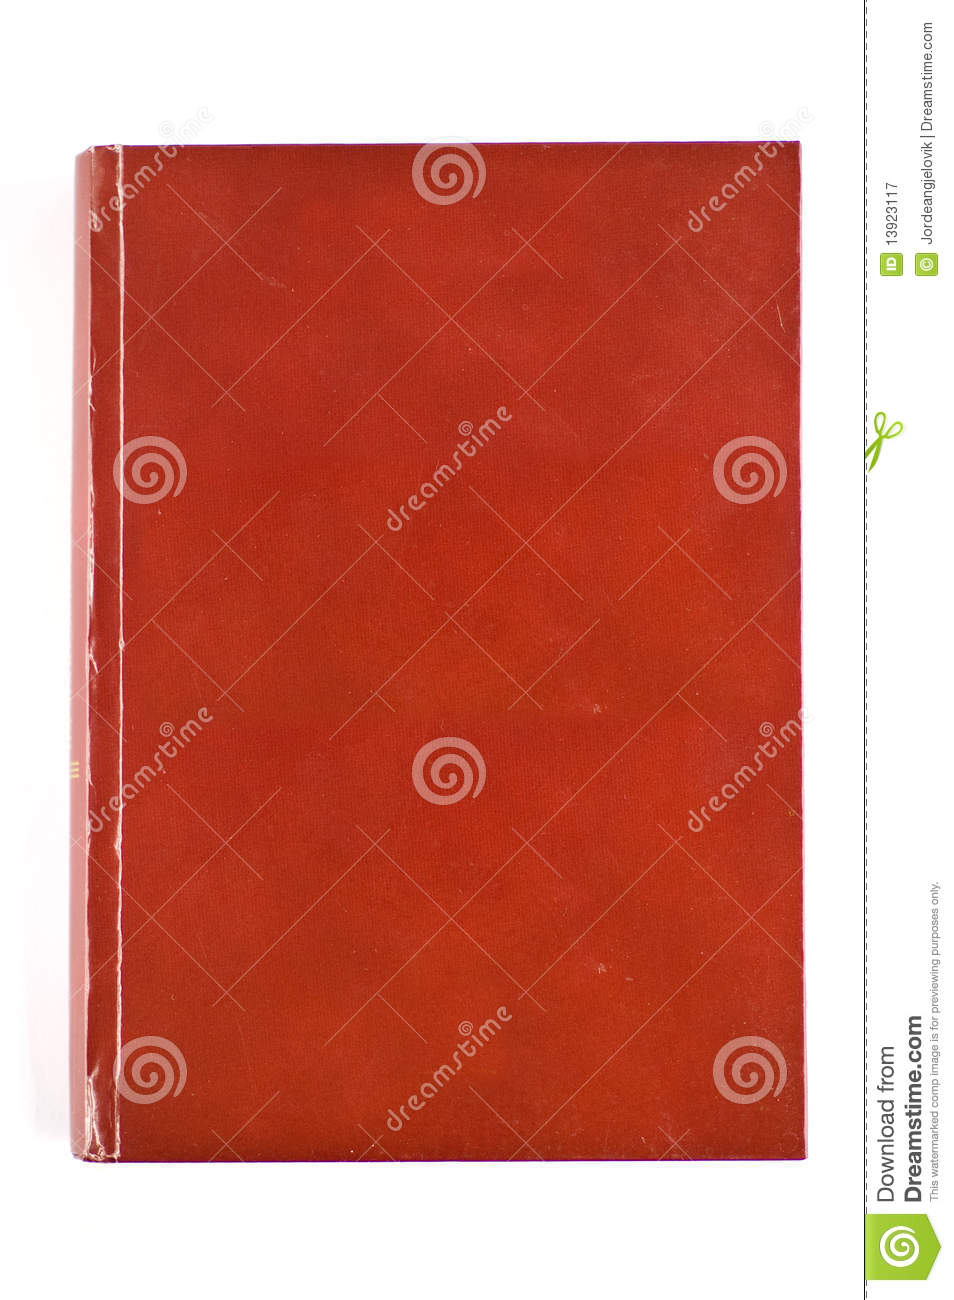 Blank red cover book